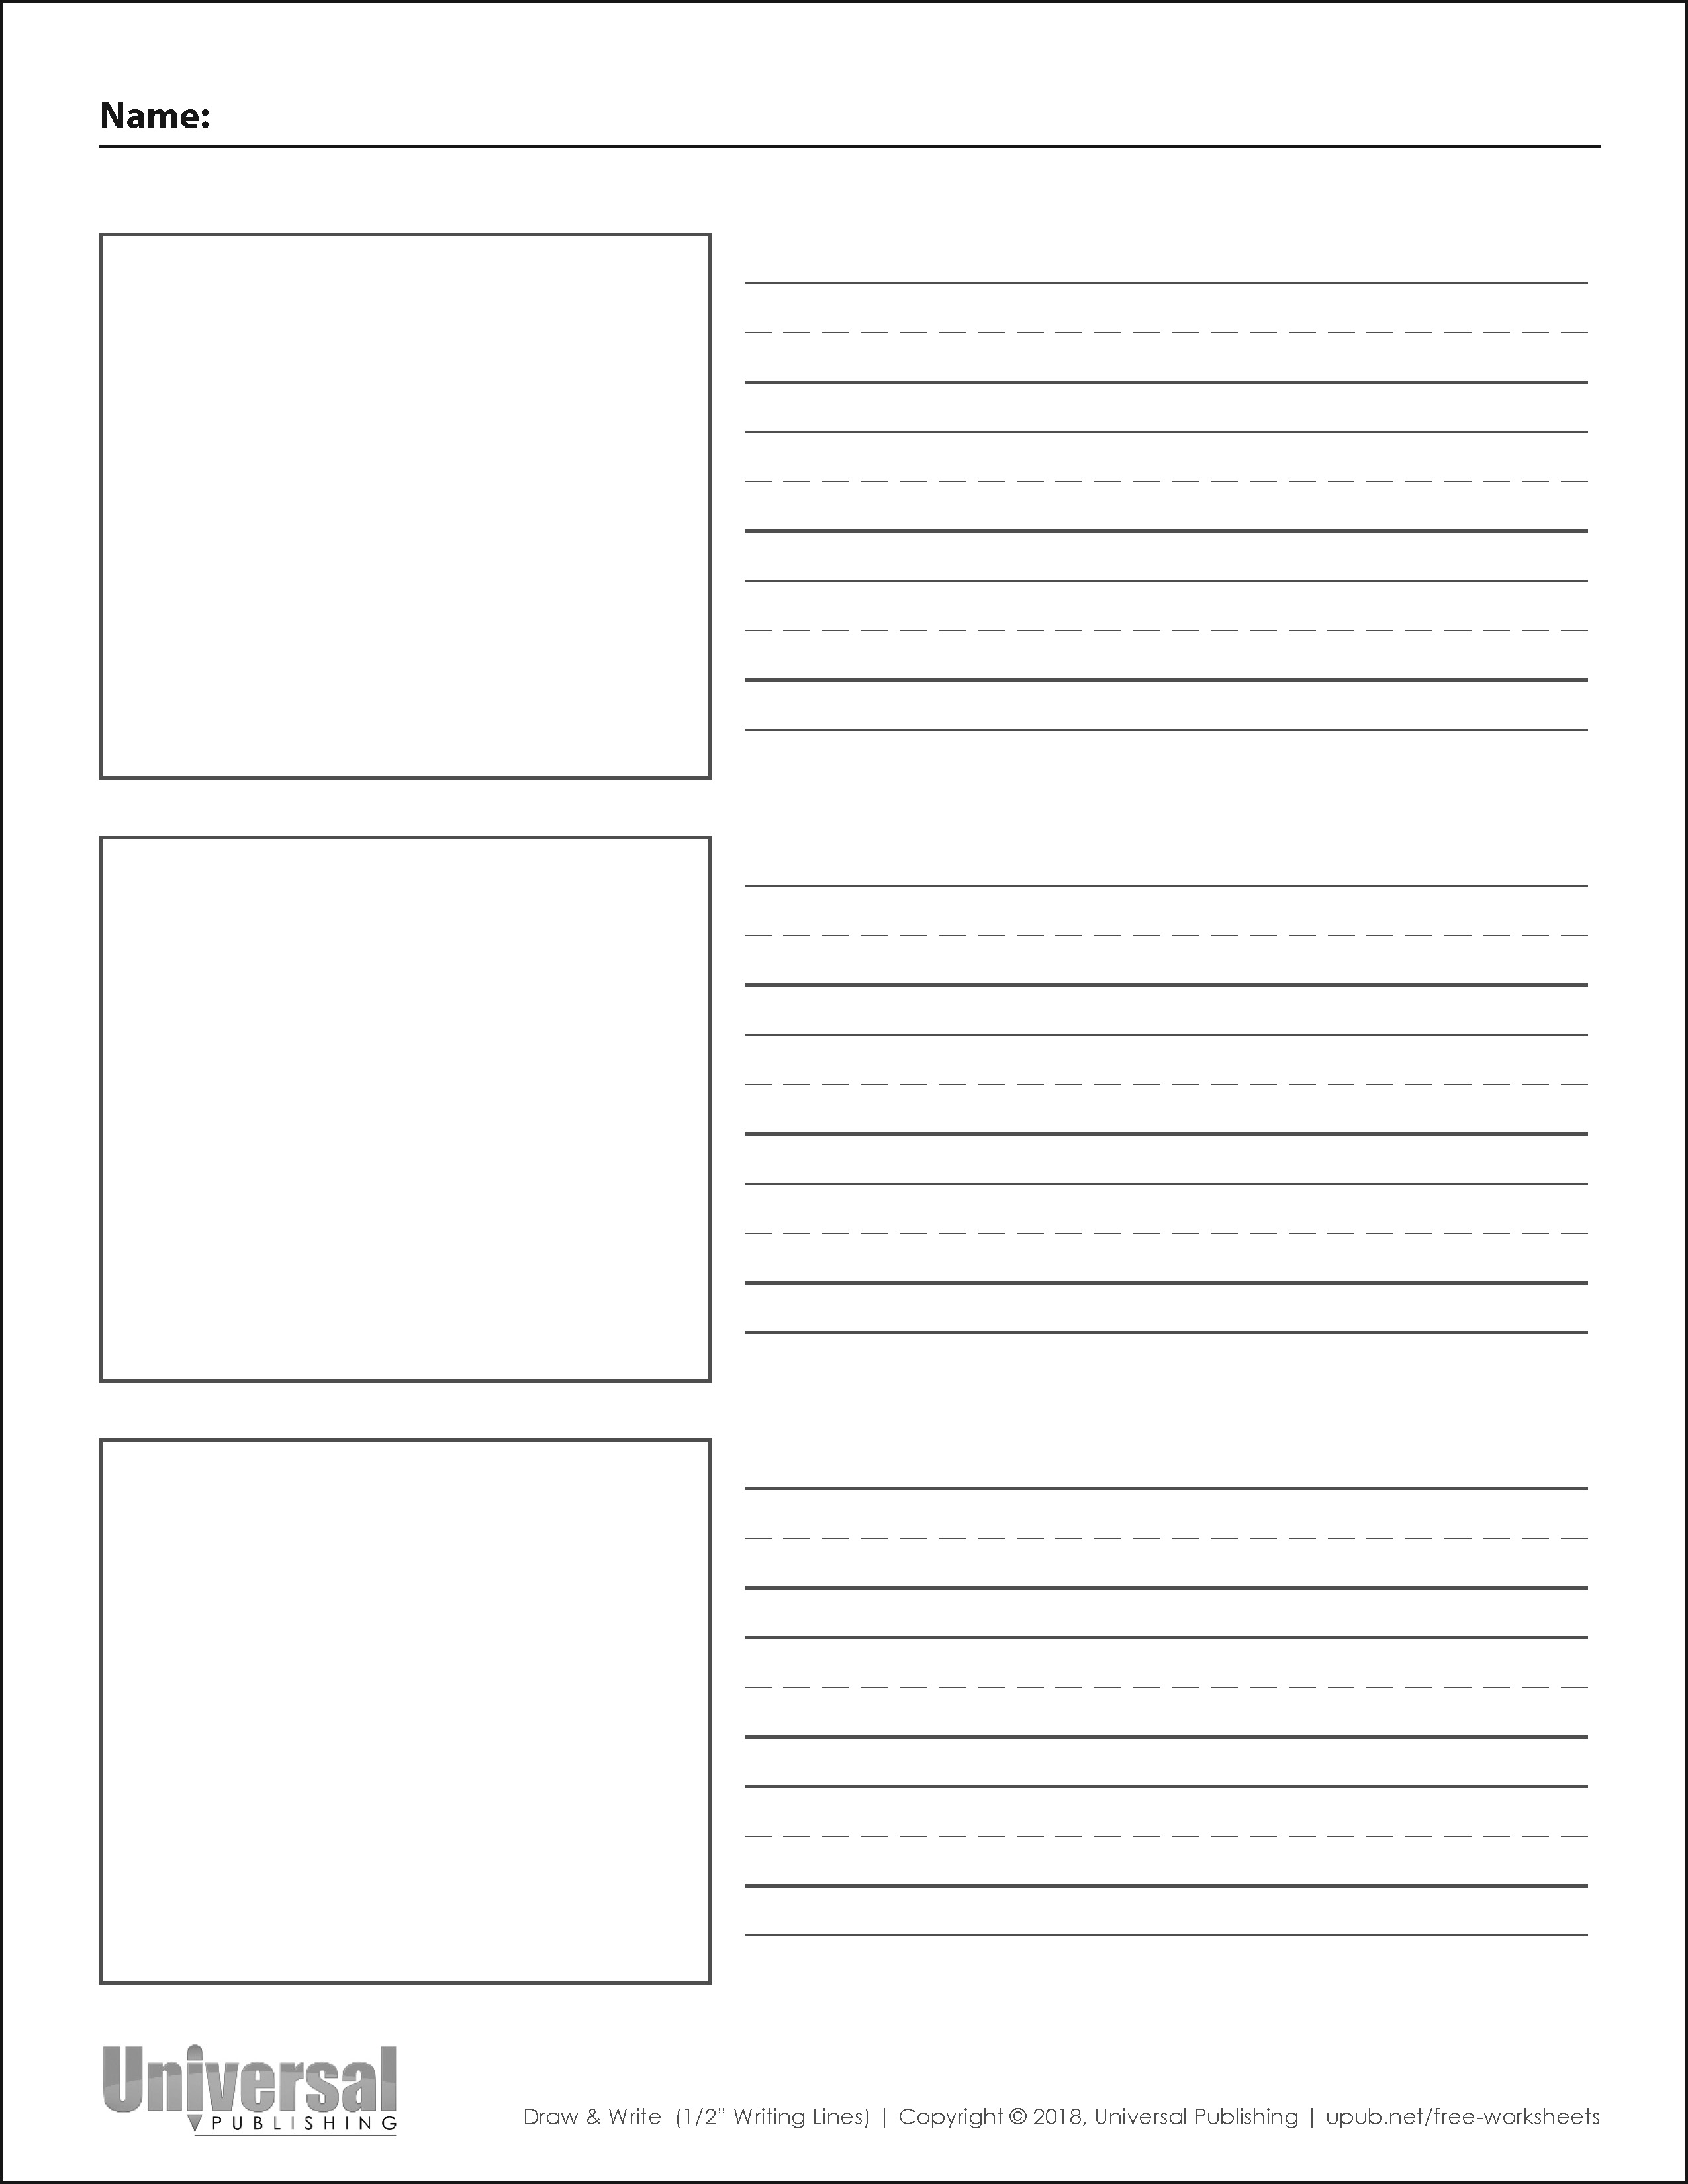 Draw and Write Vertical Half Inch Writing Lines Three Boxes